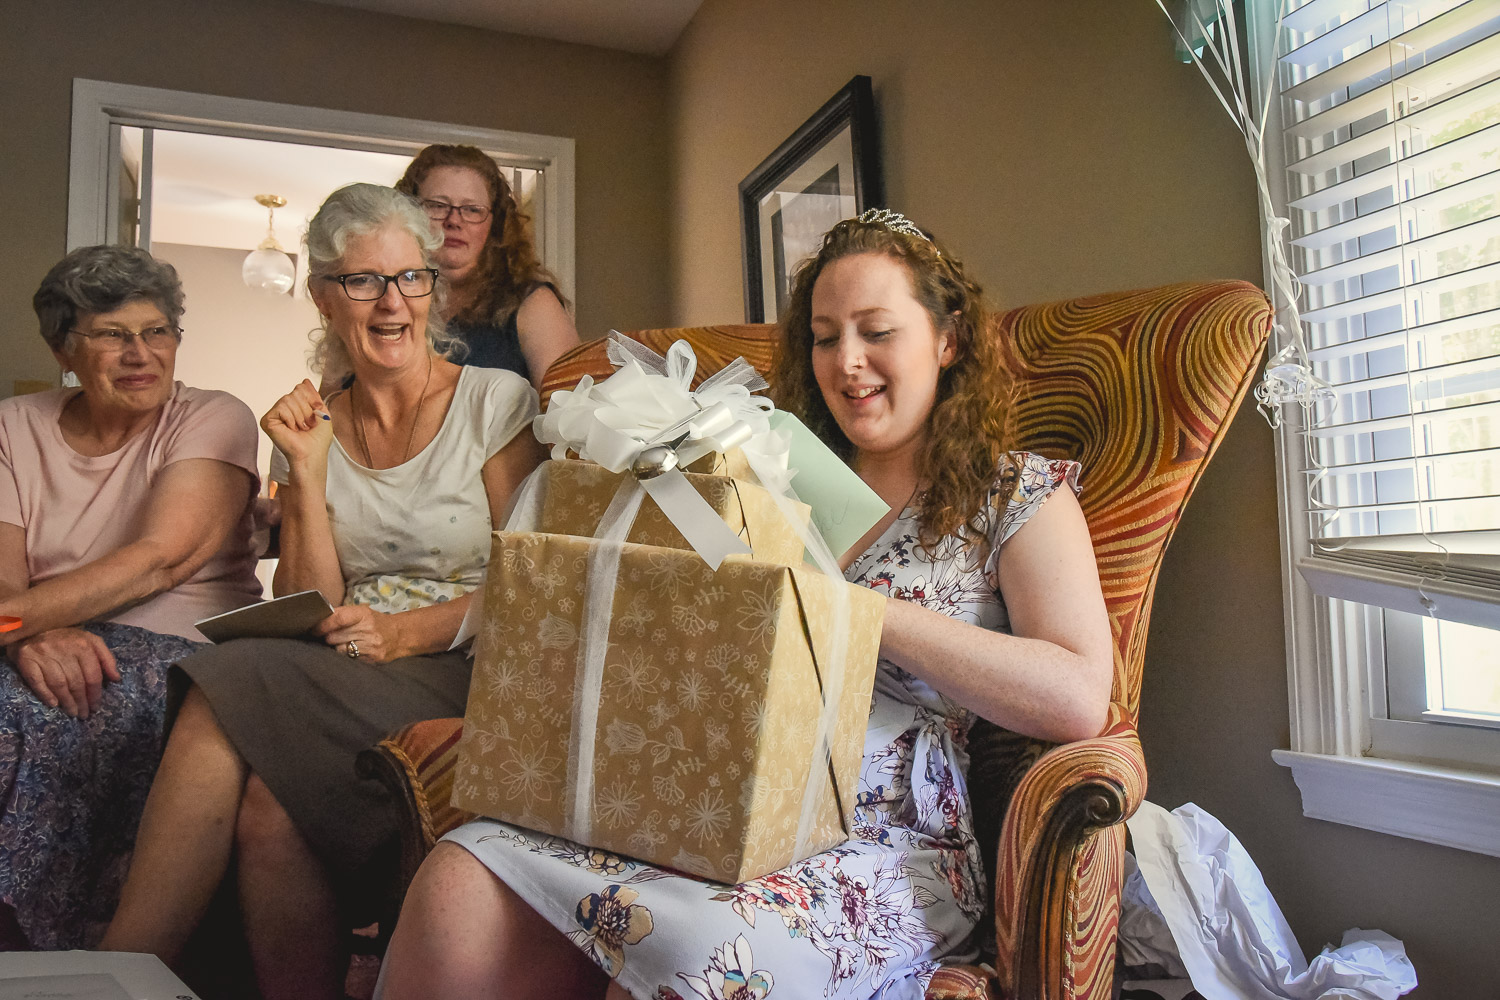 bride to be opening gifts with mom and grandma